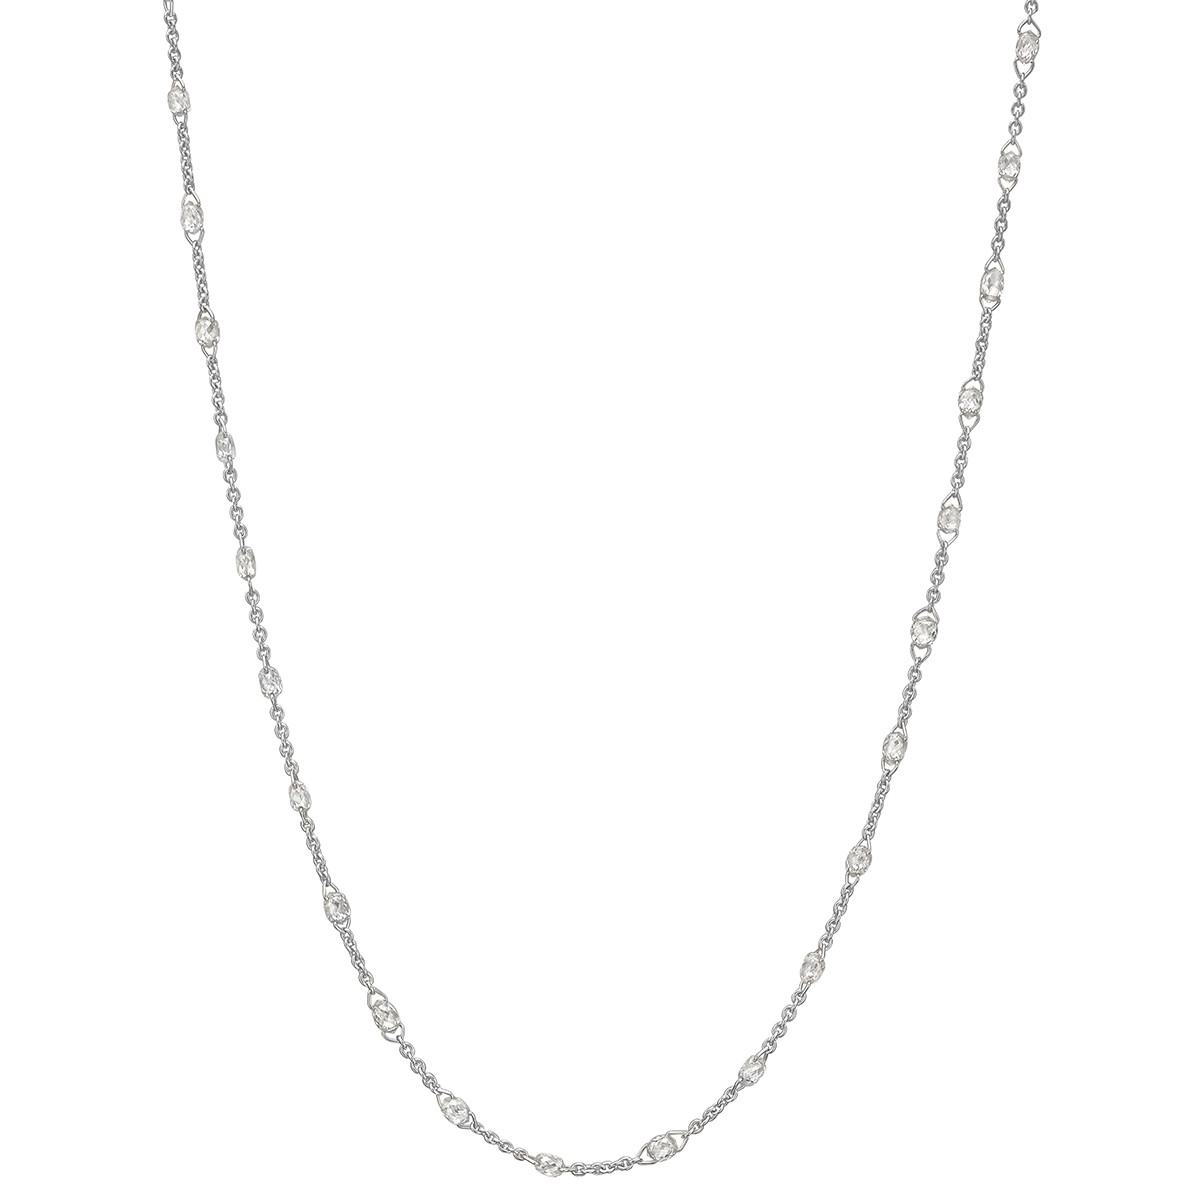 Briolette-Cut Diamond Chain Necklace (3.38 ct tw)